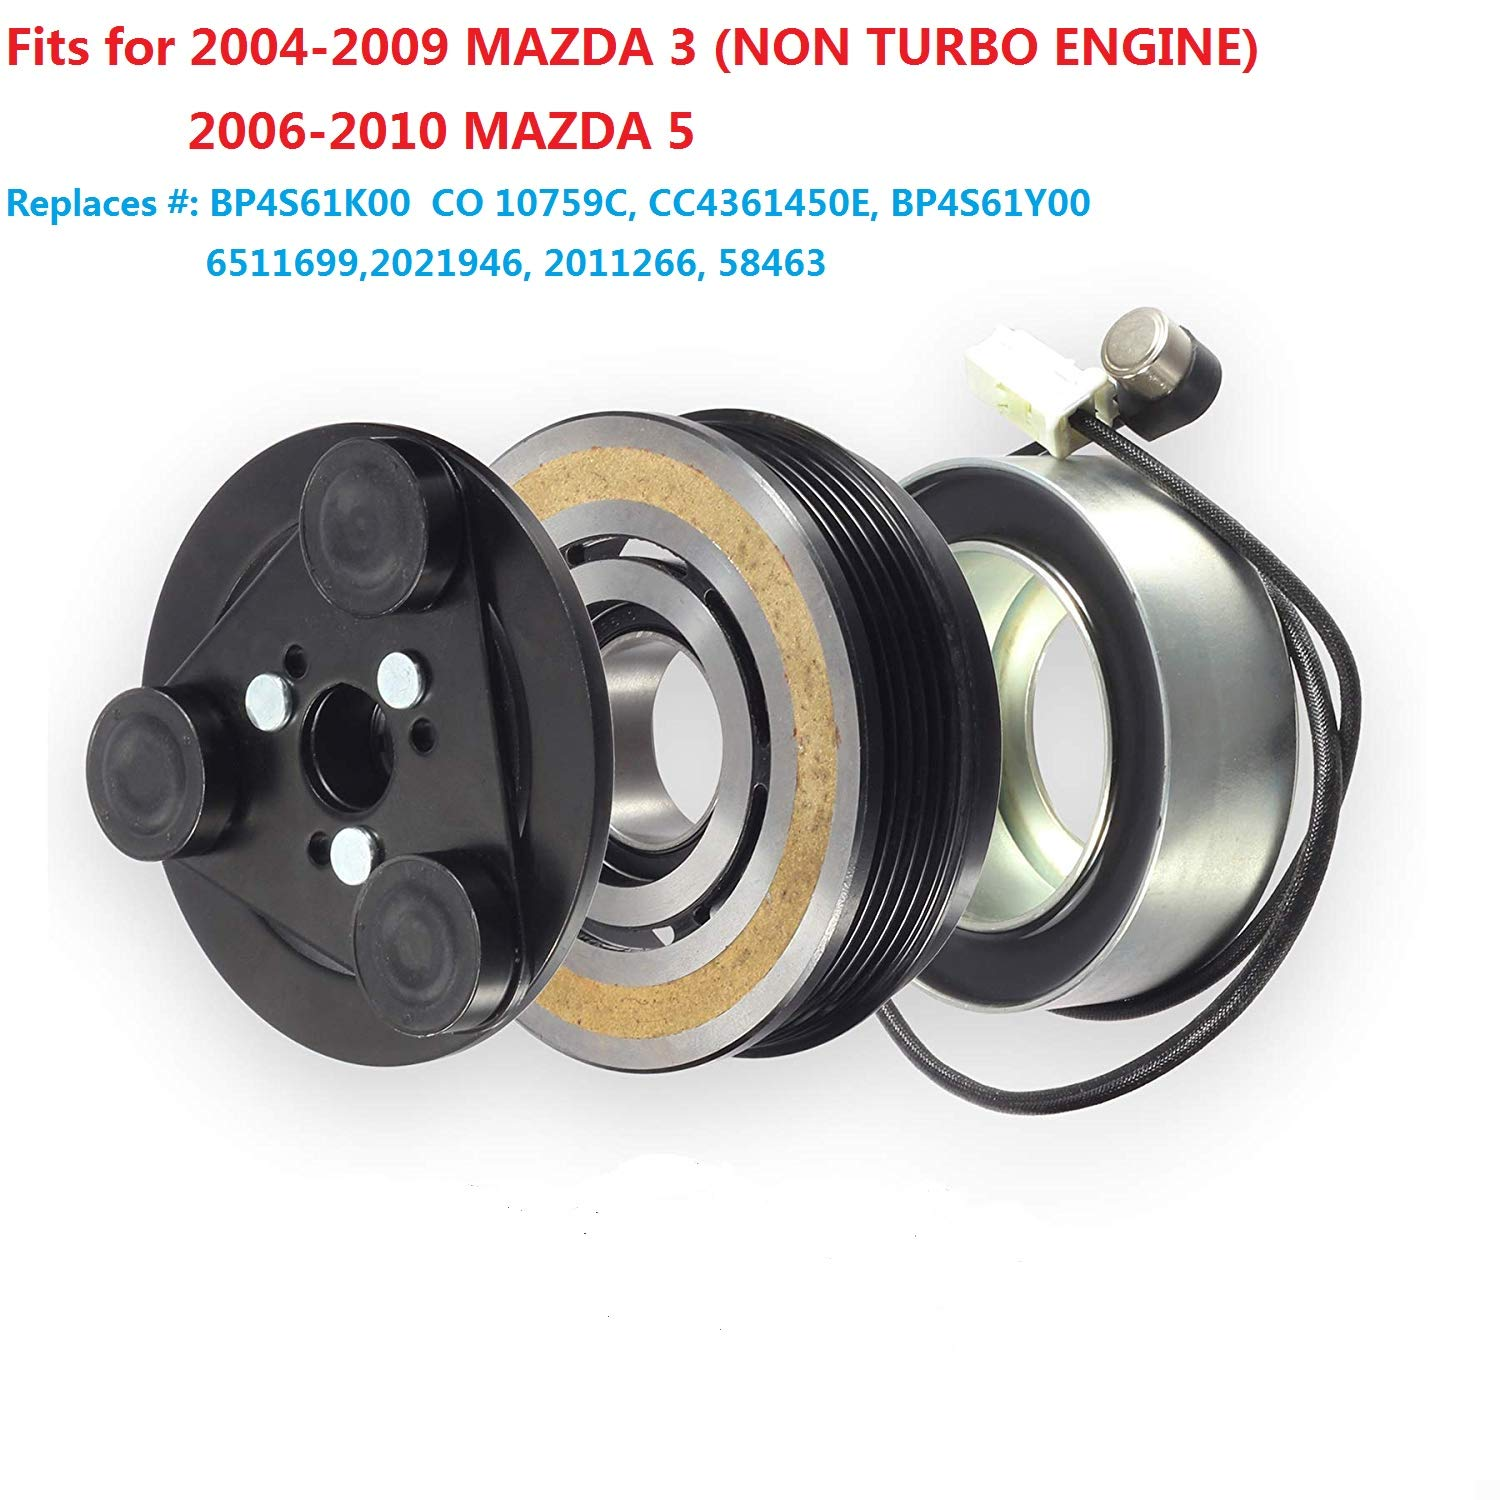 Replace # CO 10759C, CC4361450E, BP4S61K00, BP4S61Y00,6511699 HENUO A//C Compressor Clutch Coil Assembly Kit Replacement for 2004-2009 MAZDA 3 NON TURBO ENGINE 2006-2010 MAZDA 5